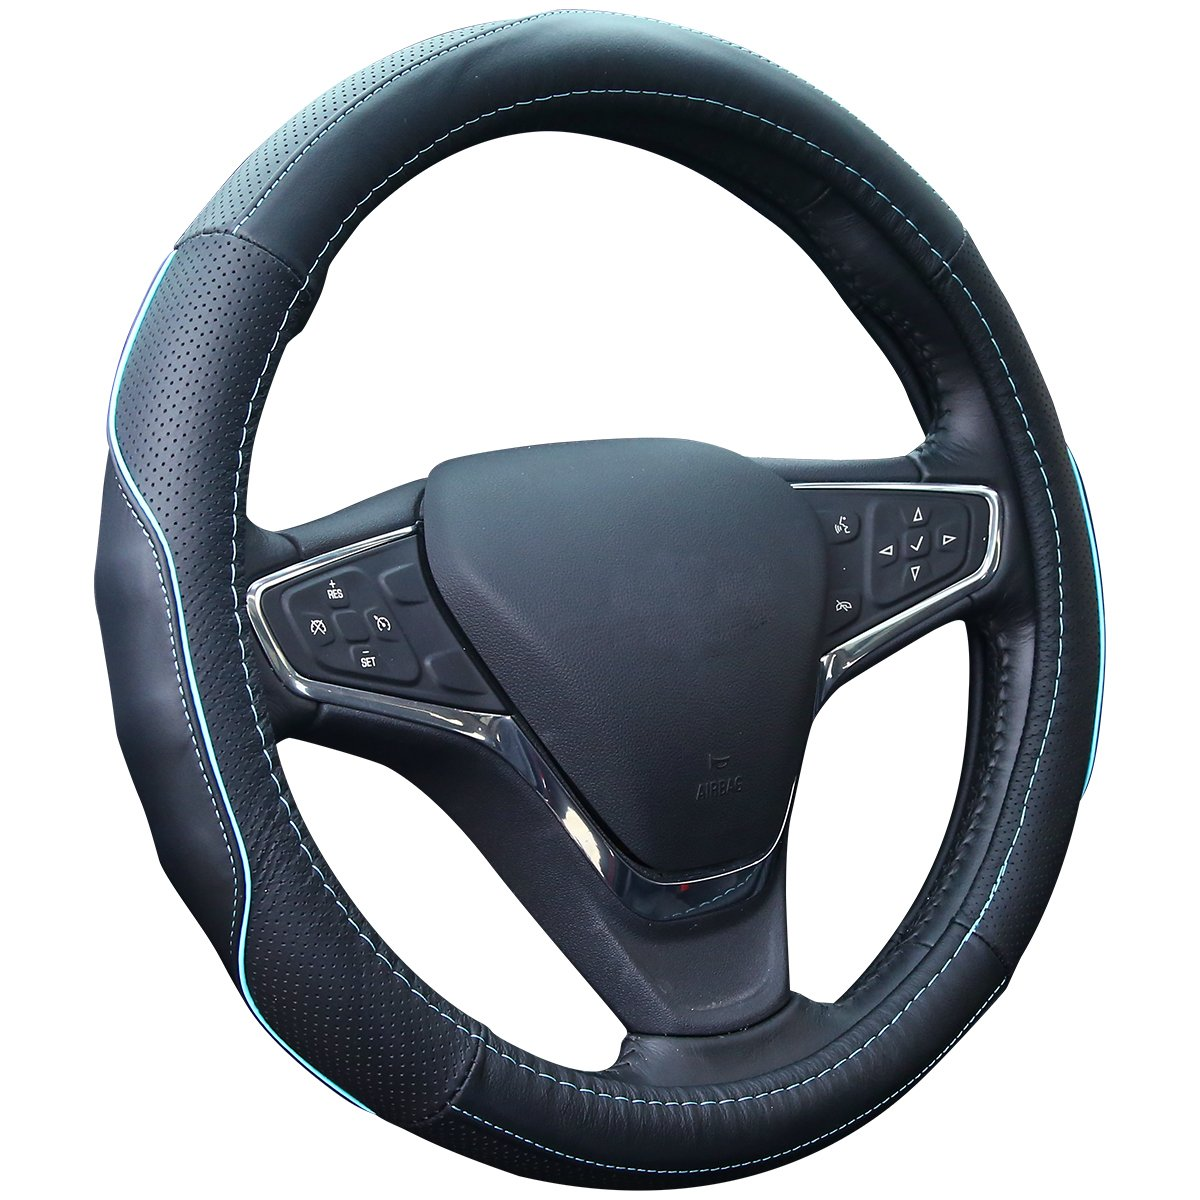 QianBao Genuine Soft Black Leather Car Steering Wheel Cover,Universal Fits 14 Inch Size, Odorless,Anti-Slip, Elegant, Excellent Grip, and Easy Install Wheel Wrap (Blue/Black)